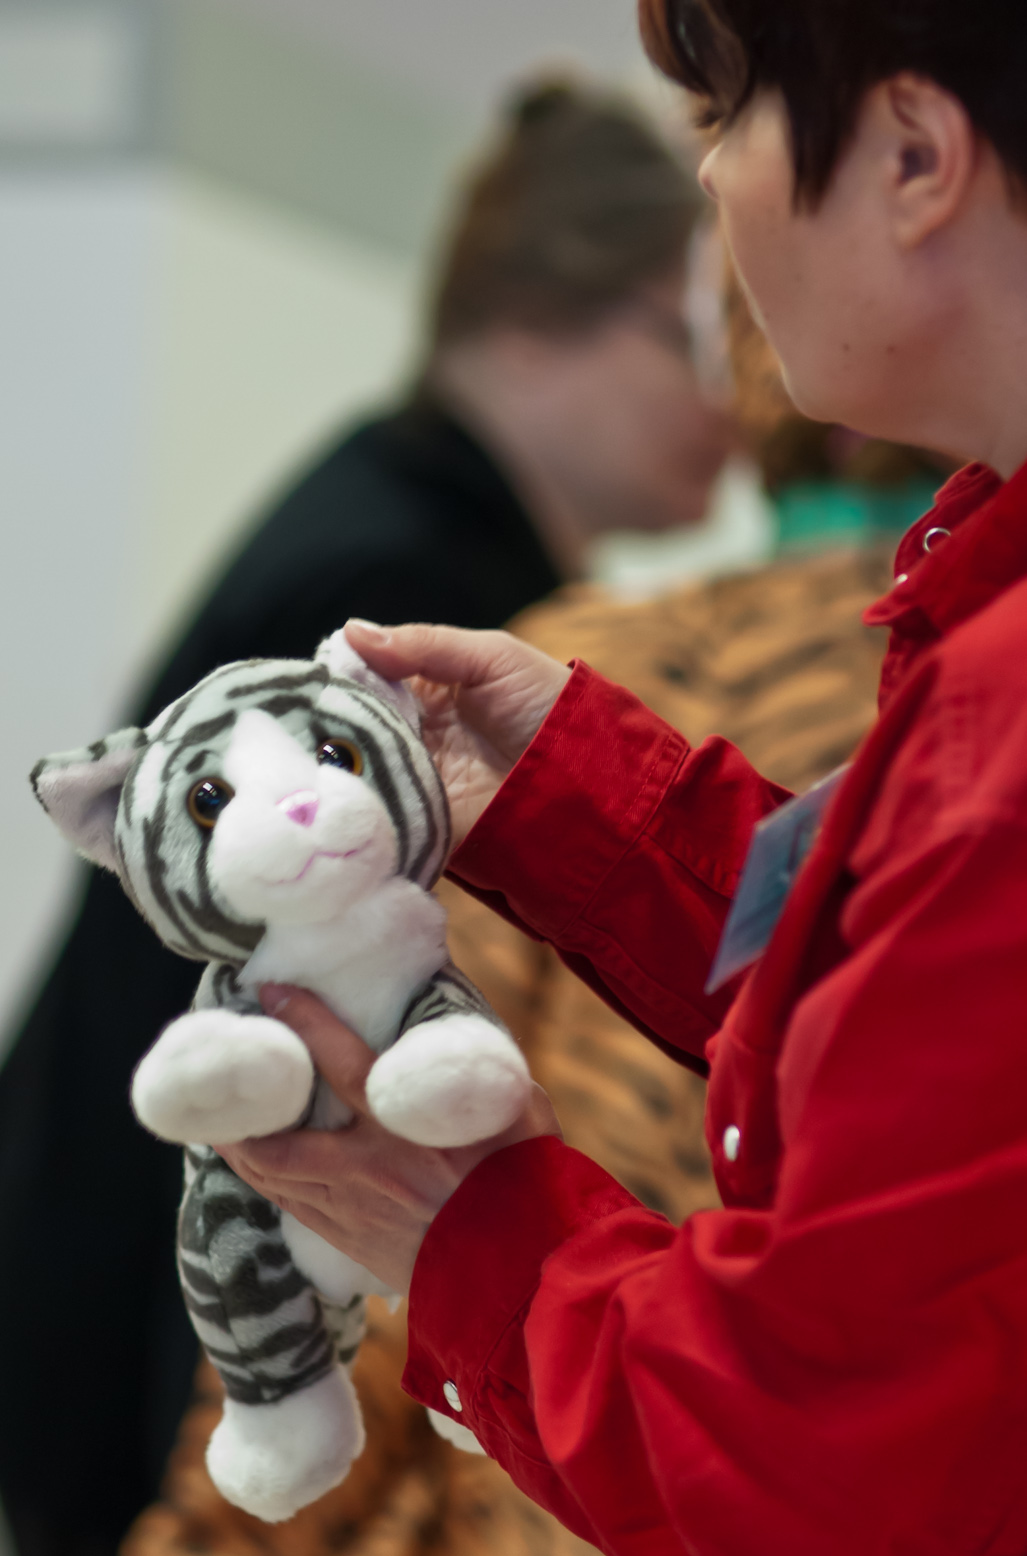 the toy cat contest, photo 191031, 2012-03-17